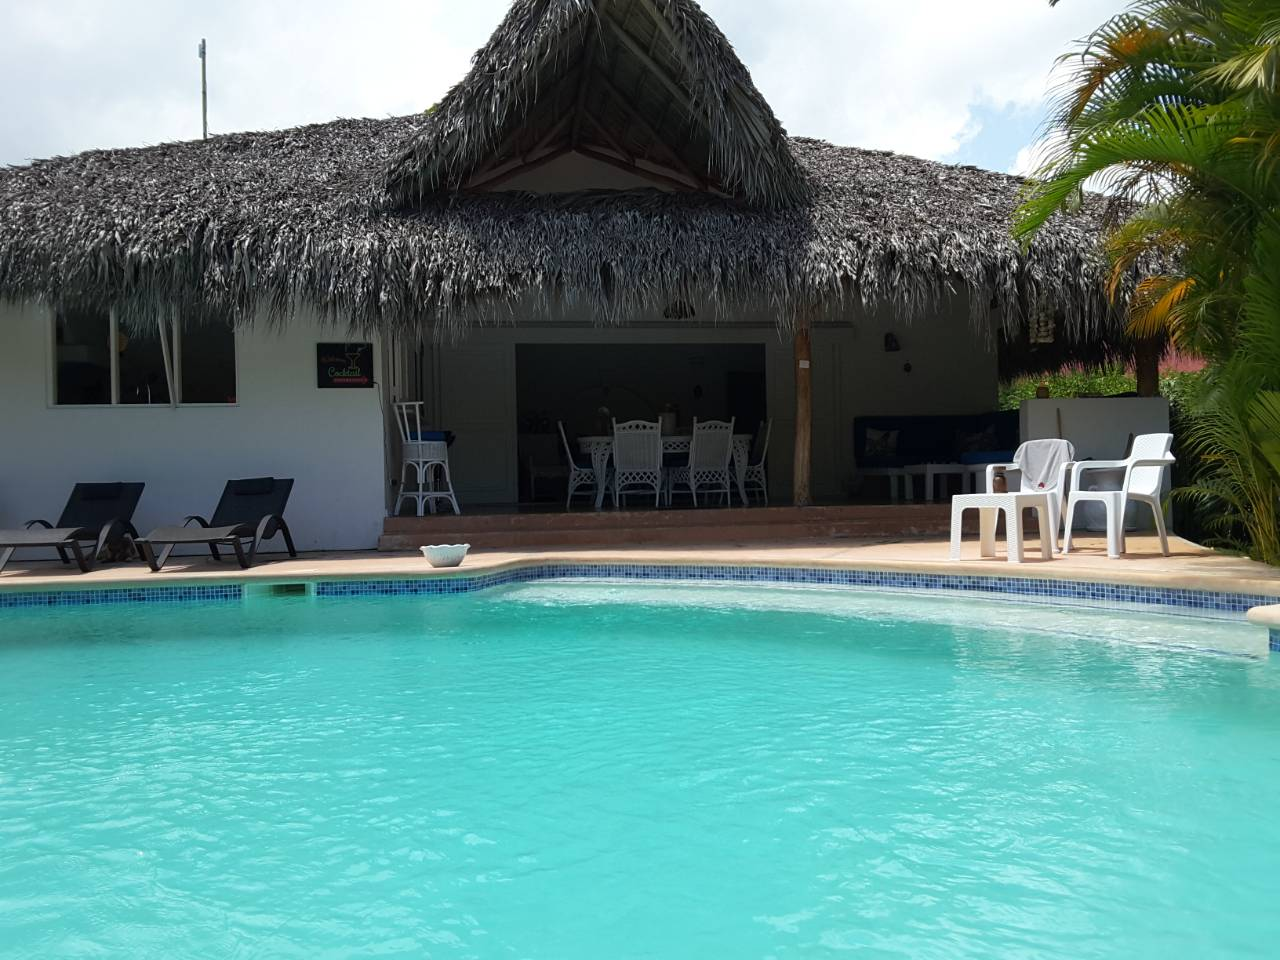 Villa for sale in Las Terrenas perfect for bed and breakfast14.jpeg